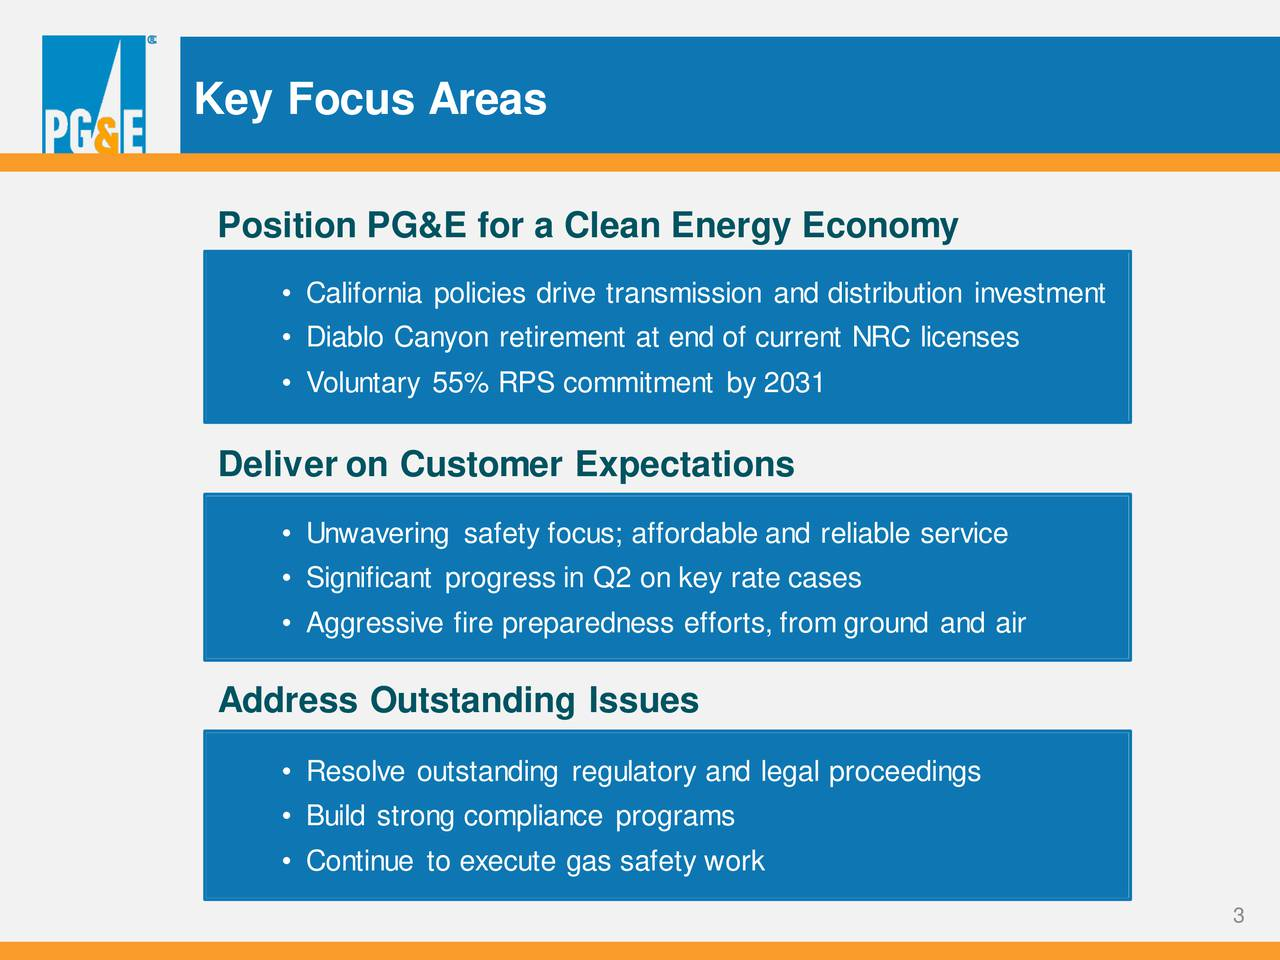 Position PG&E for a Clean Energy Economy California policies drive transmission and distribution investment Diablo Canyon retirement at end of current NRC licenses Voluntary 55% RPS commitment by 2031 Deliveron Customer Expectations Unwavering safety focus; affordable and reliable service Significant progress in Q2 on key rate cases Aggressive fire preparedness efforts,fromground and air Address Outstanding Issues Resolve outstanding regulatory and legal proceedings Build strong compliance programs Continue to execute gas safetywork 3